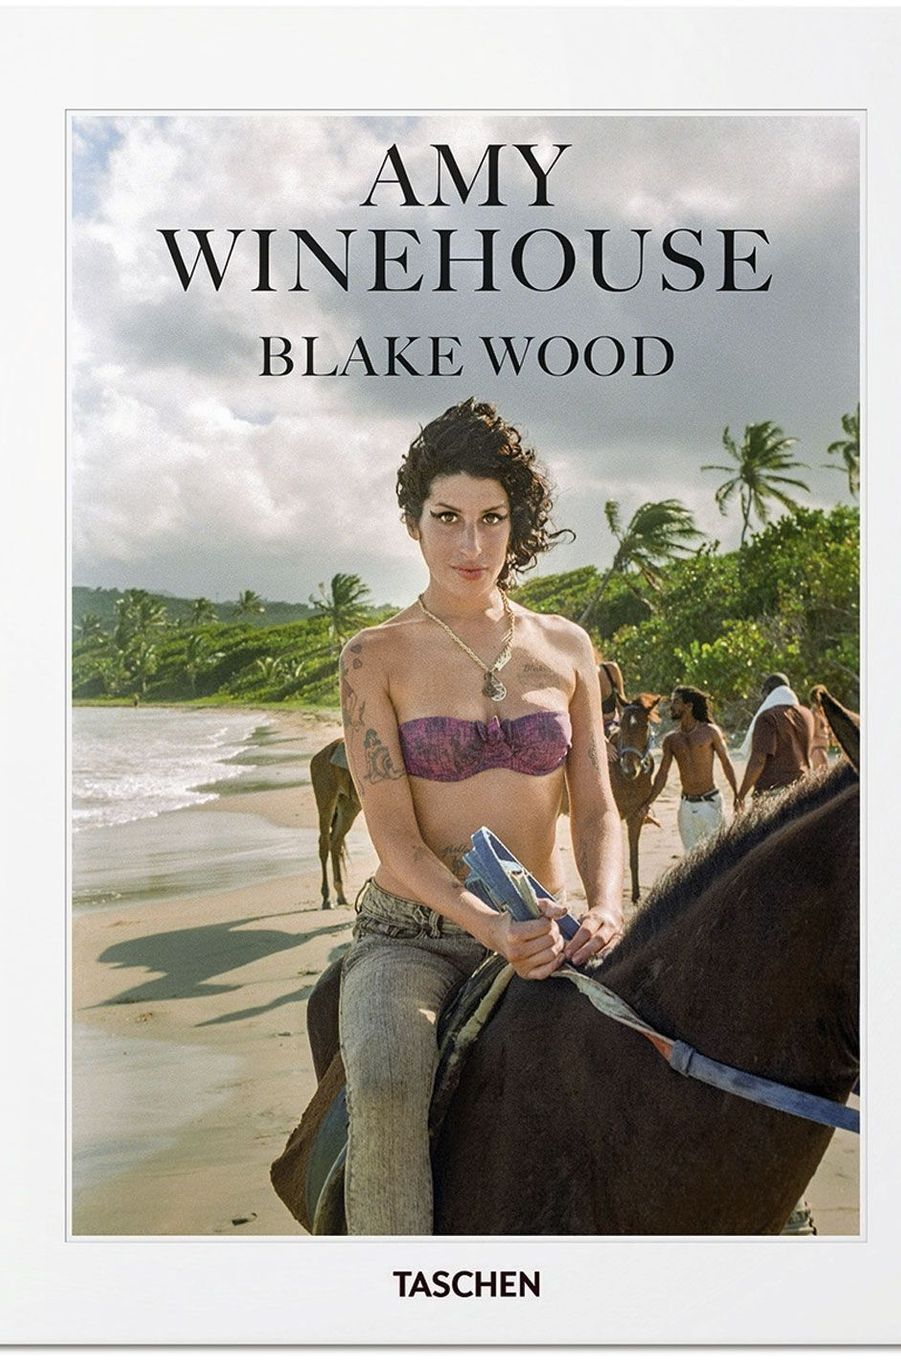 « Amy Winehouse », de Blake Wood, éd. Taschen.